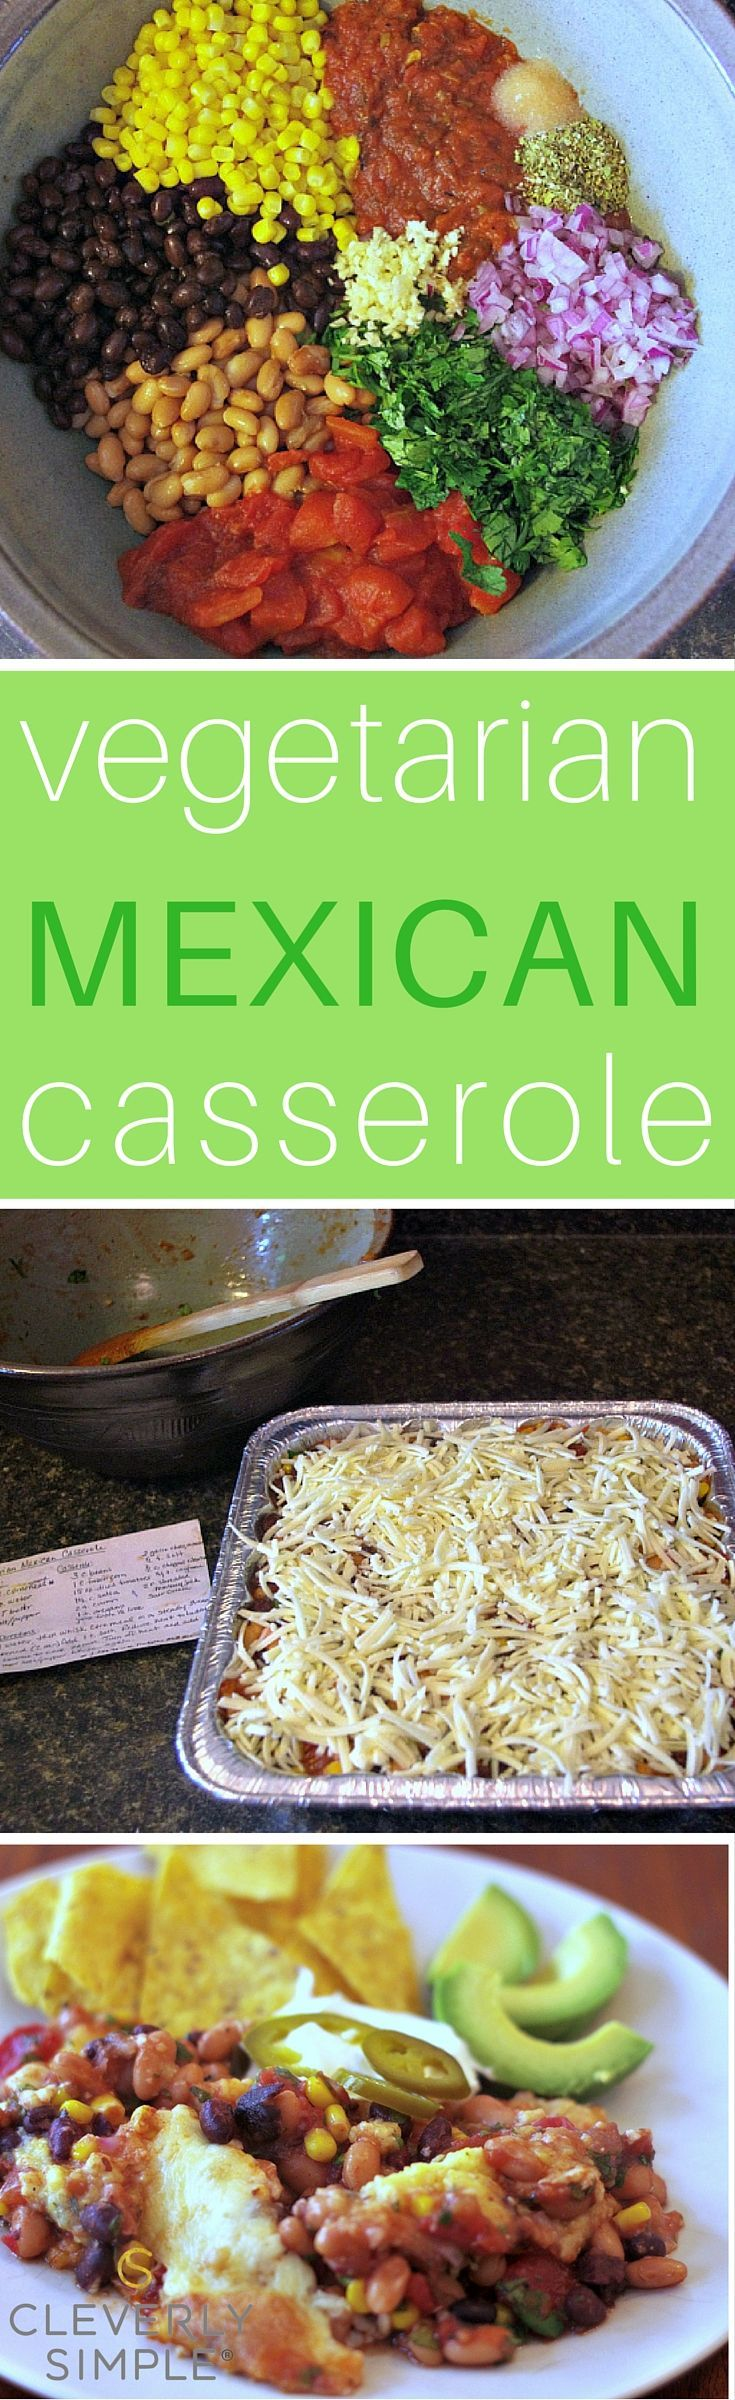 Best 25 vegetarian mexican food ideas on pinterest vegetarian easy vegetarian mexican casserole that is healthy for your whole family forumfinder Image collections